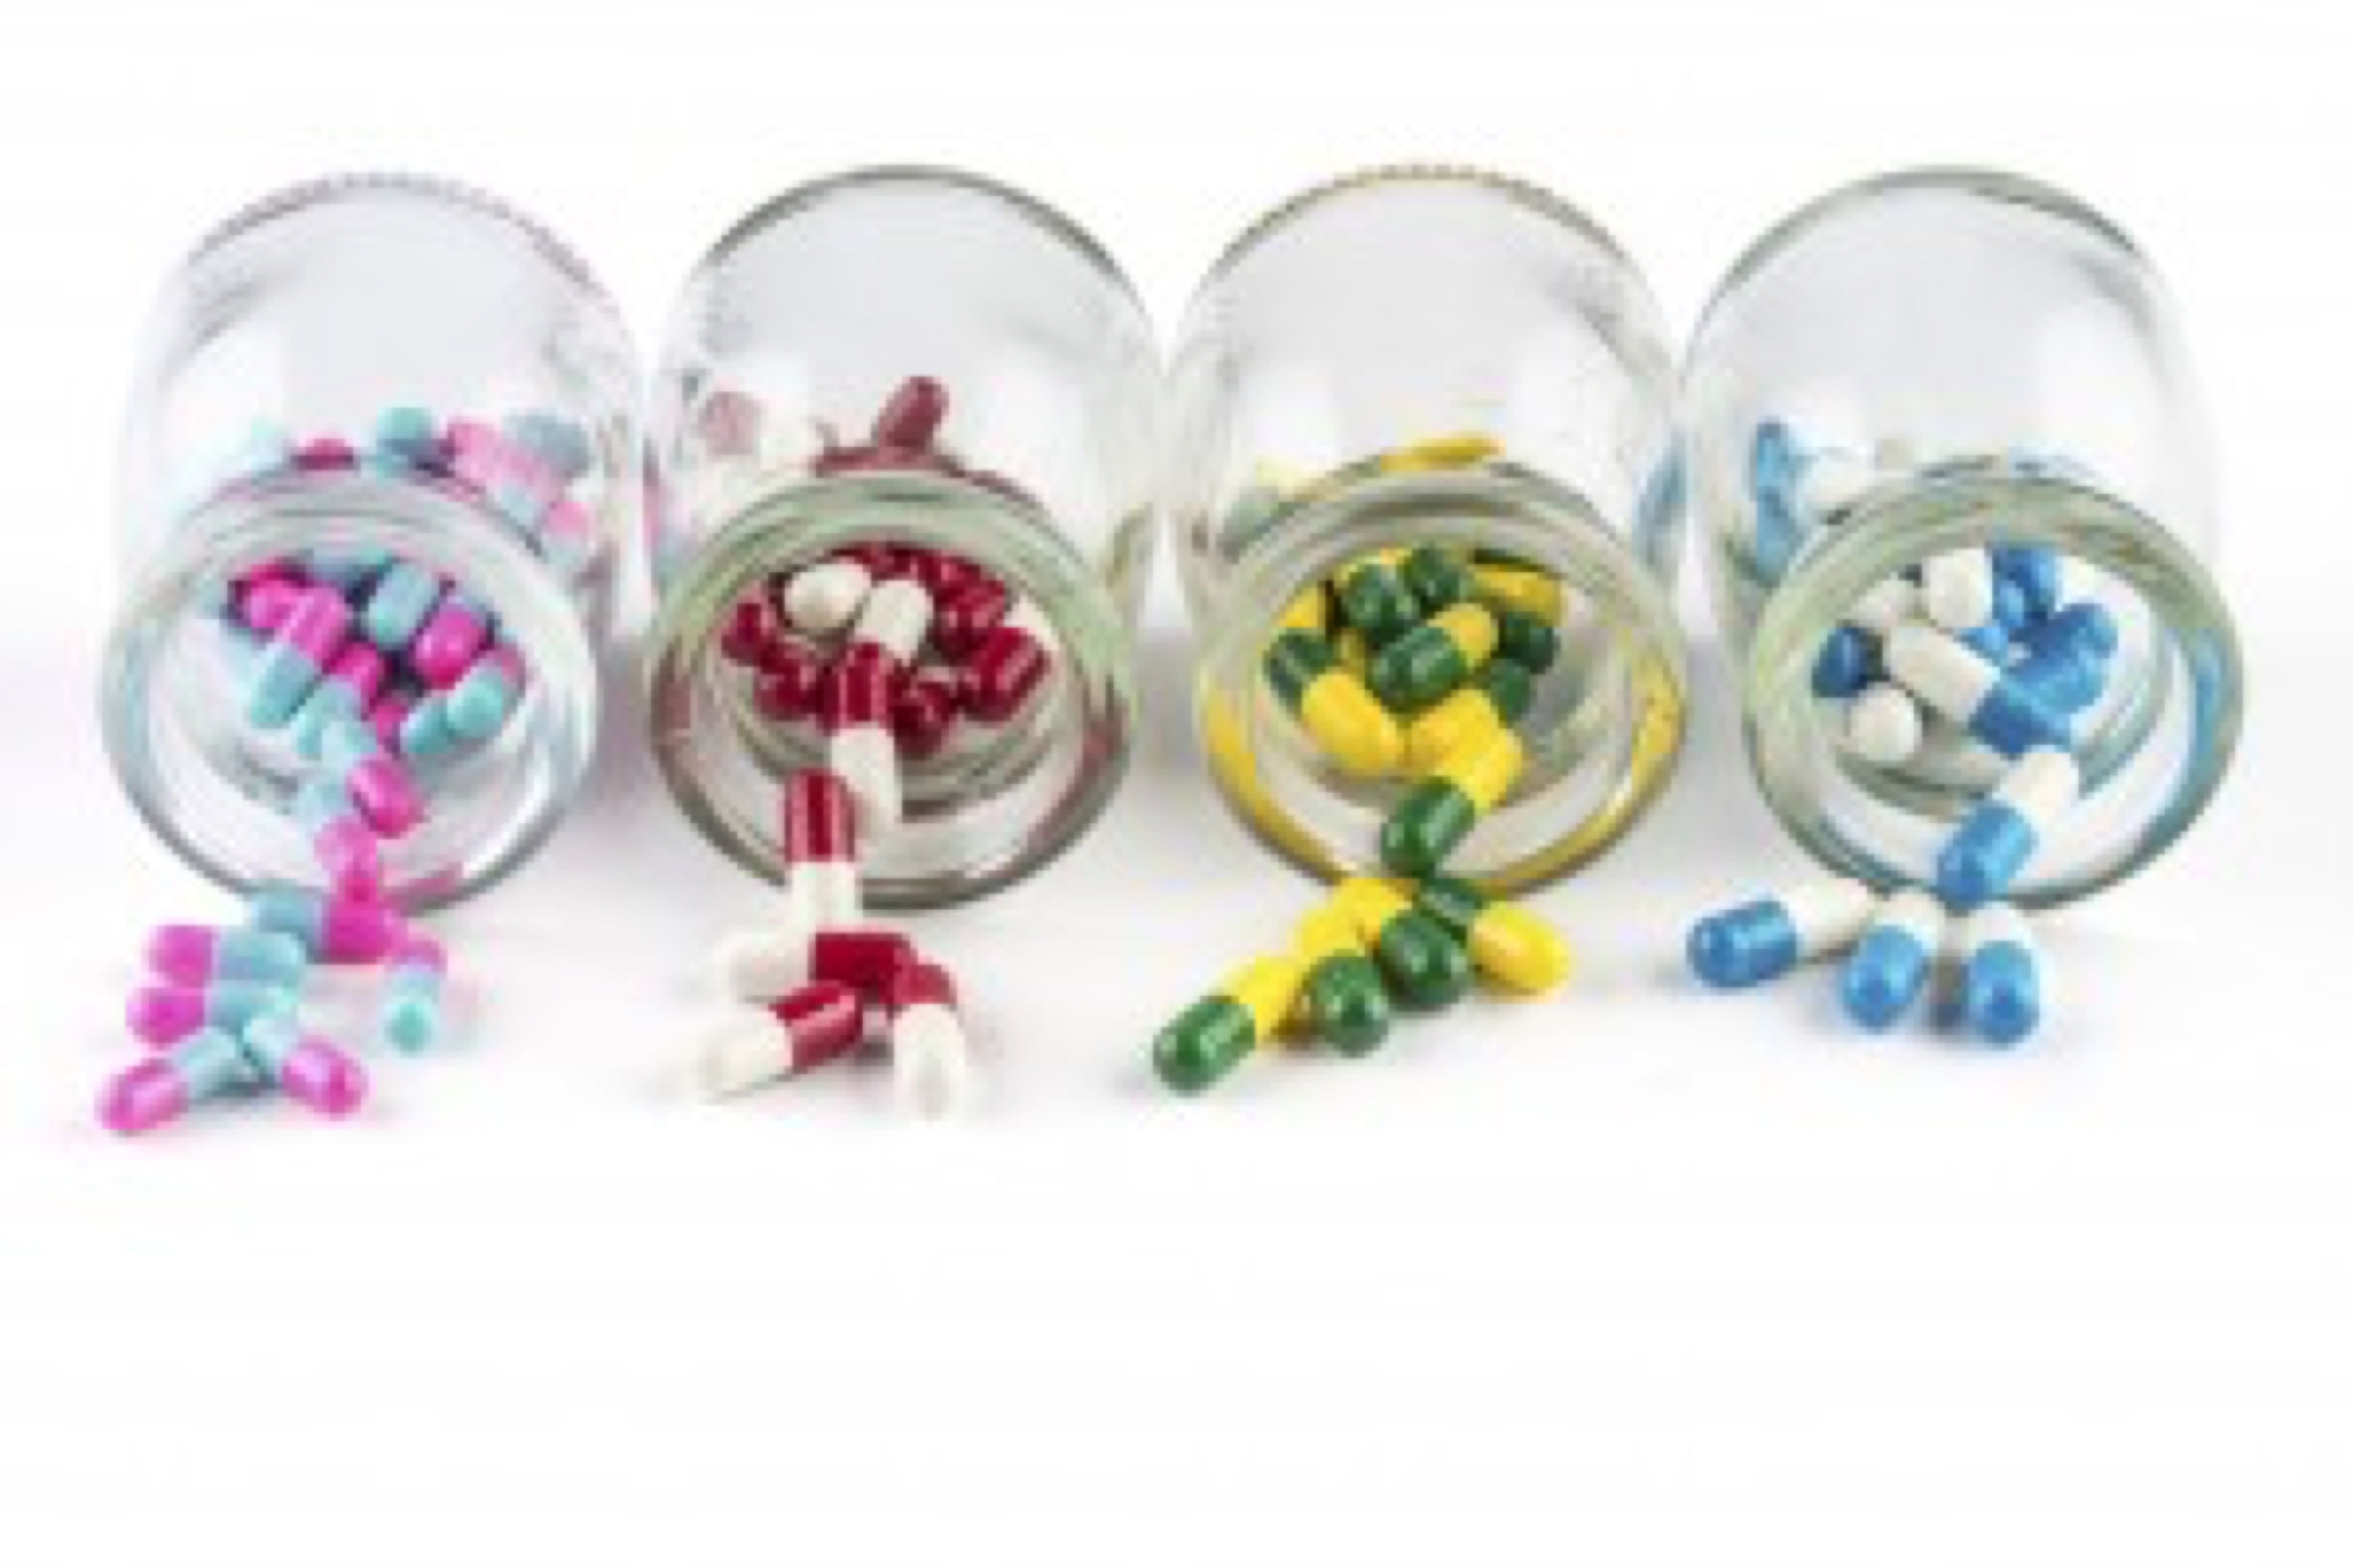 colorful capsule in Transparent bottle, Healthcare And Medicine healthcare medicament